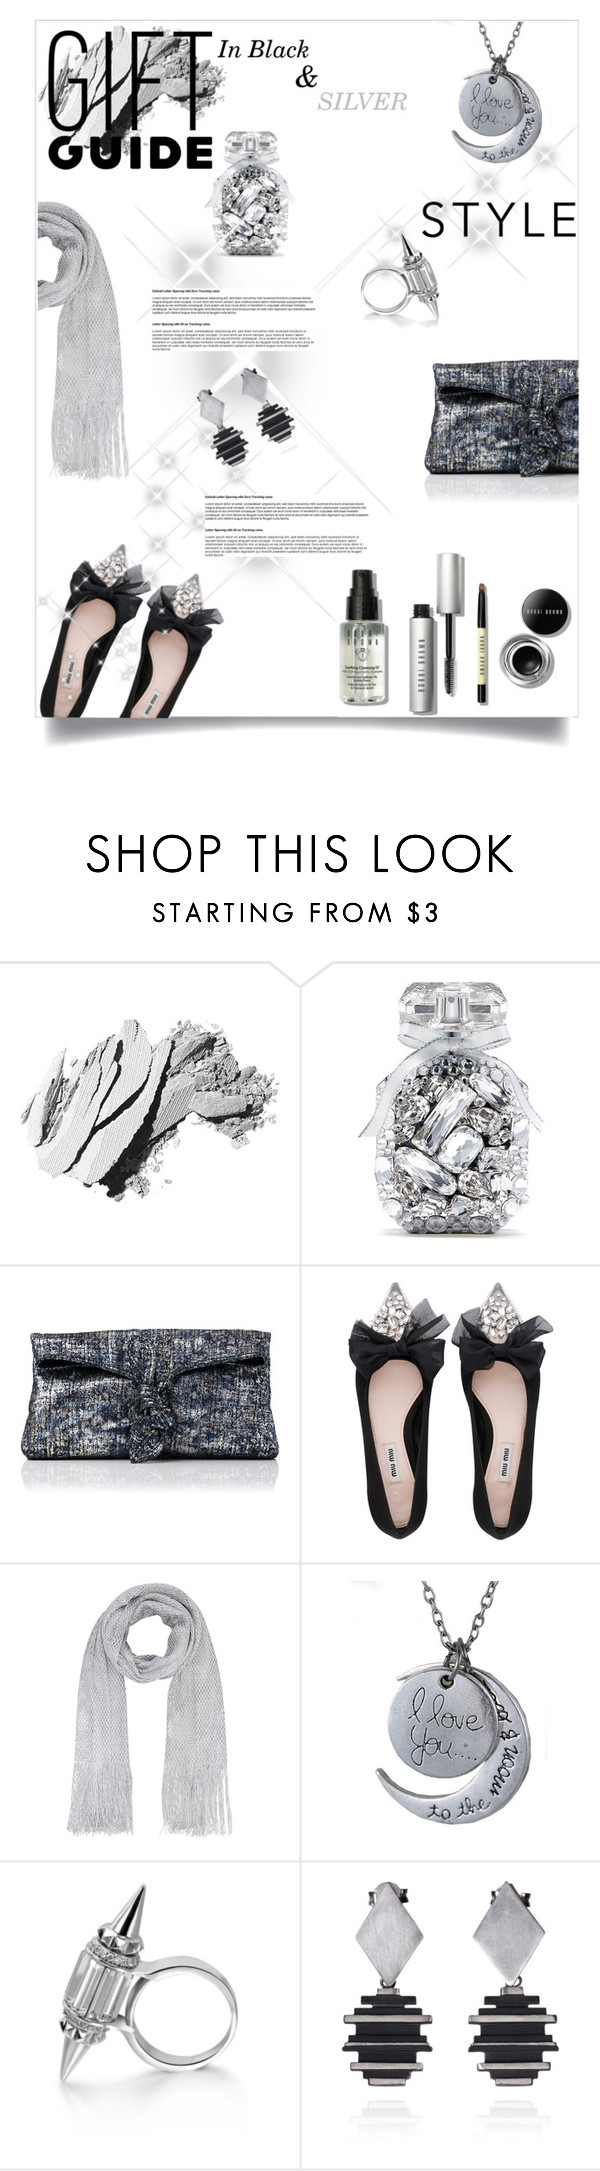 """Gift Guide: Besties - Black & Silver"" by celeste-menezes on Polyvore featuring Bobbi Brown Cosmetics, Victoria's Secret, L.K.Bennett, Miu Miu and besties"